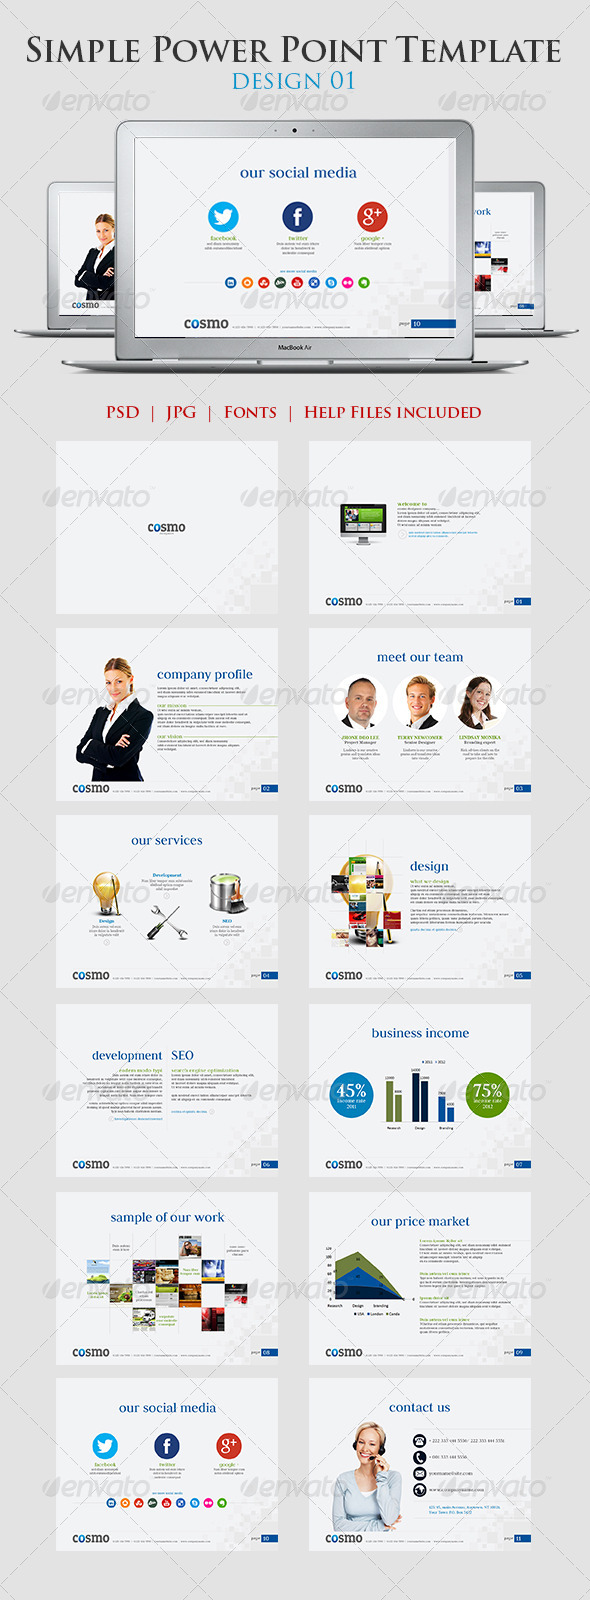 Simple Power point Template Design 01 - Presentation Templates